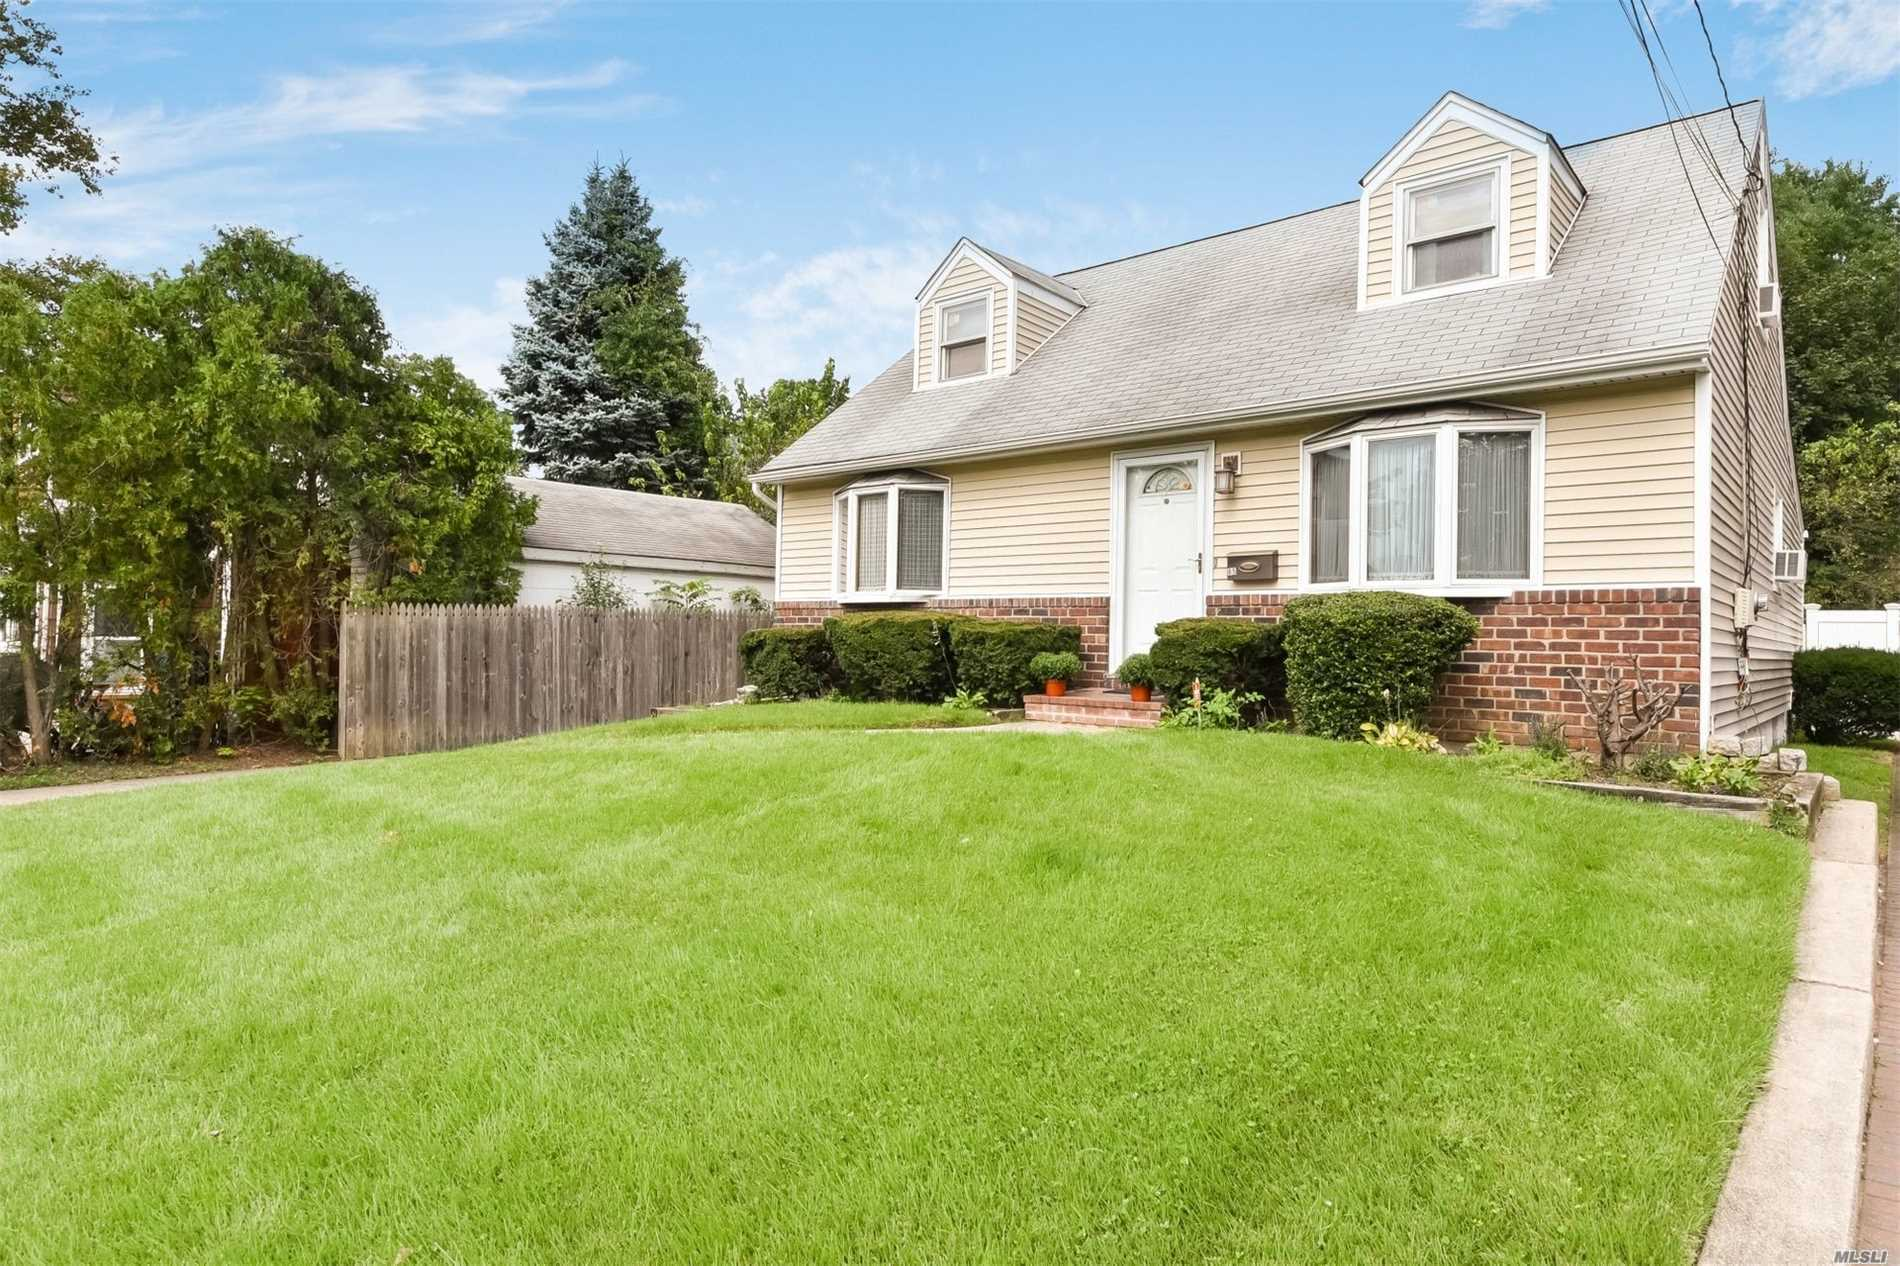 Price Reduction! Lovely, Bright 4 Br Cape With Beautiful Bay Windows On Oversized Property In A Cul De Sac. 1st Floor: Lr, Dr, Eik, 2Br, 1 Full Bath. 2nd Floor: 2 Br, 1 Full Bath. Full Basement With Laundry Facility. Enjoy All Village Amenities I.E. Pool, Library Etc. Only Blocks From Lirr, Shopping & Restaurants.